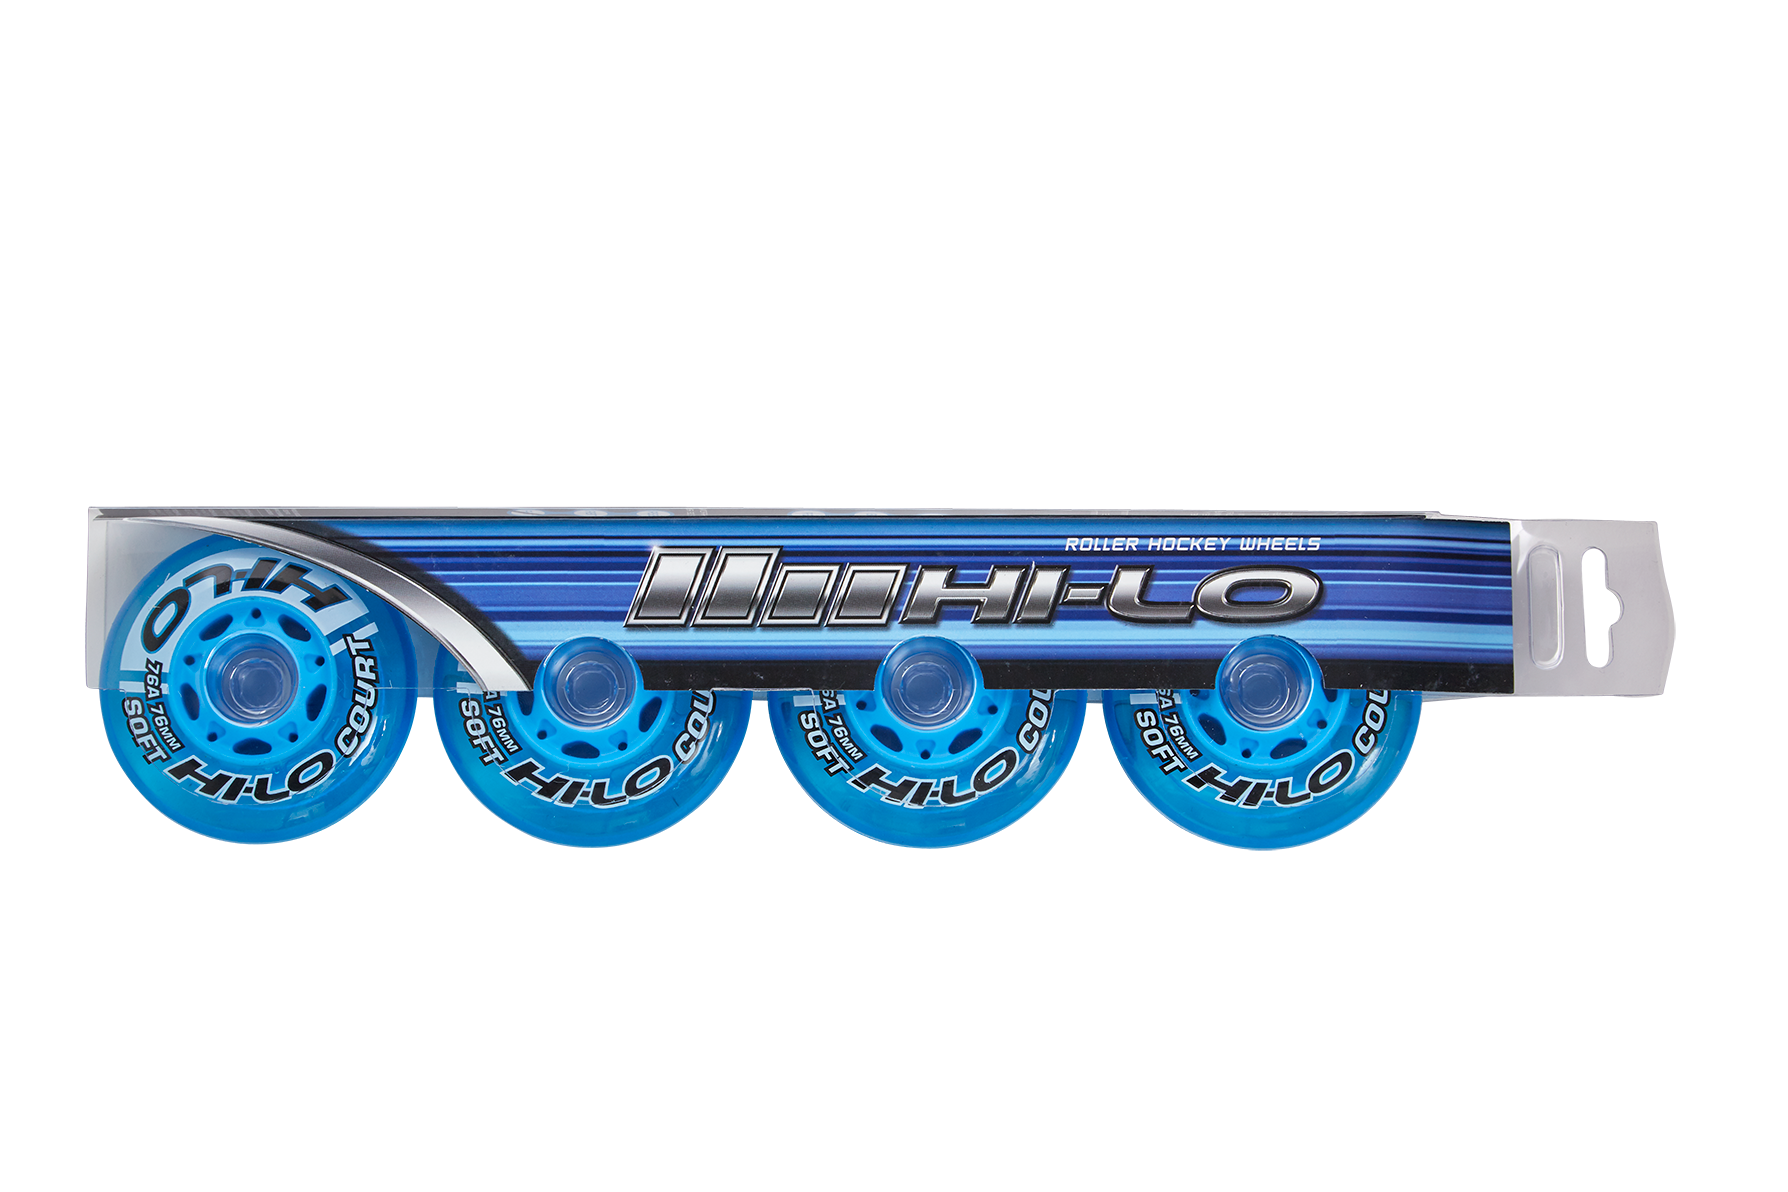 HI-LO COURT ROLLER HOCKEY WHEELS 4PK S19 (INDOOR),,Размер M